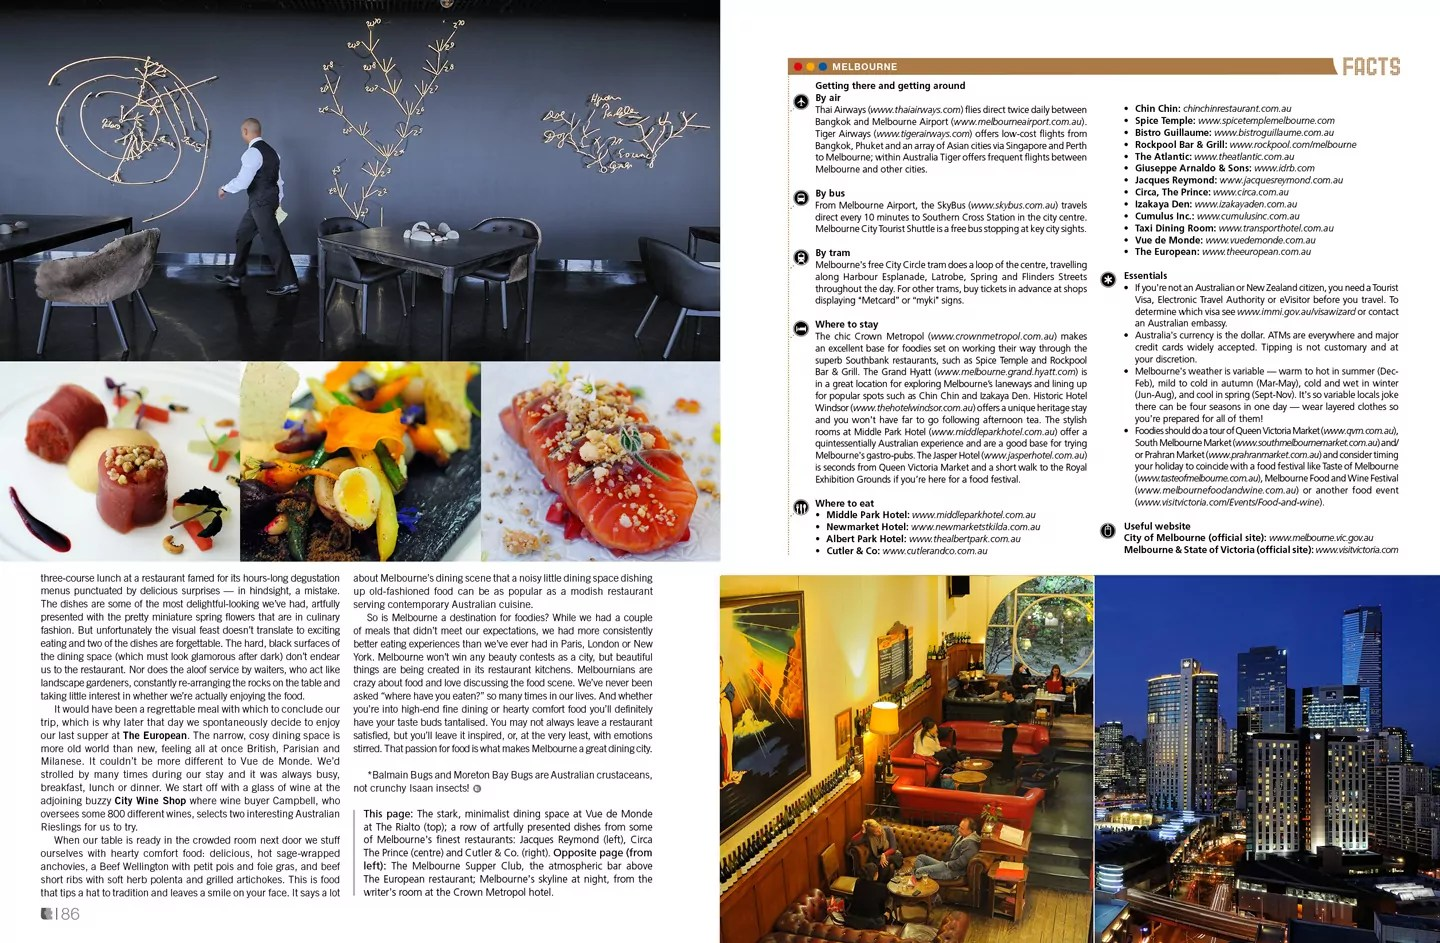 Lifestyle+Travel Magazine — Mouthwatering Melbourne. Lara Dunston. Photography: Terence Carter.